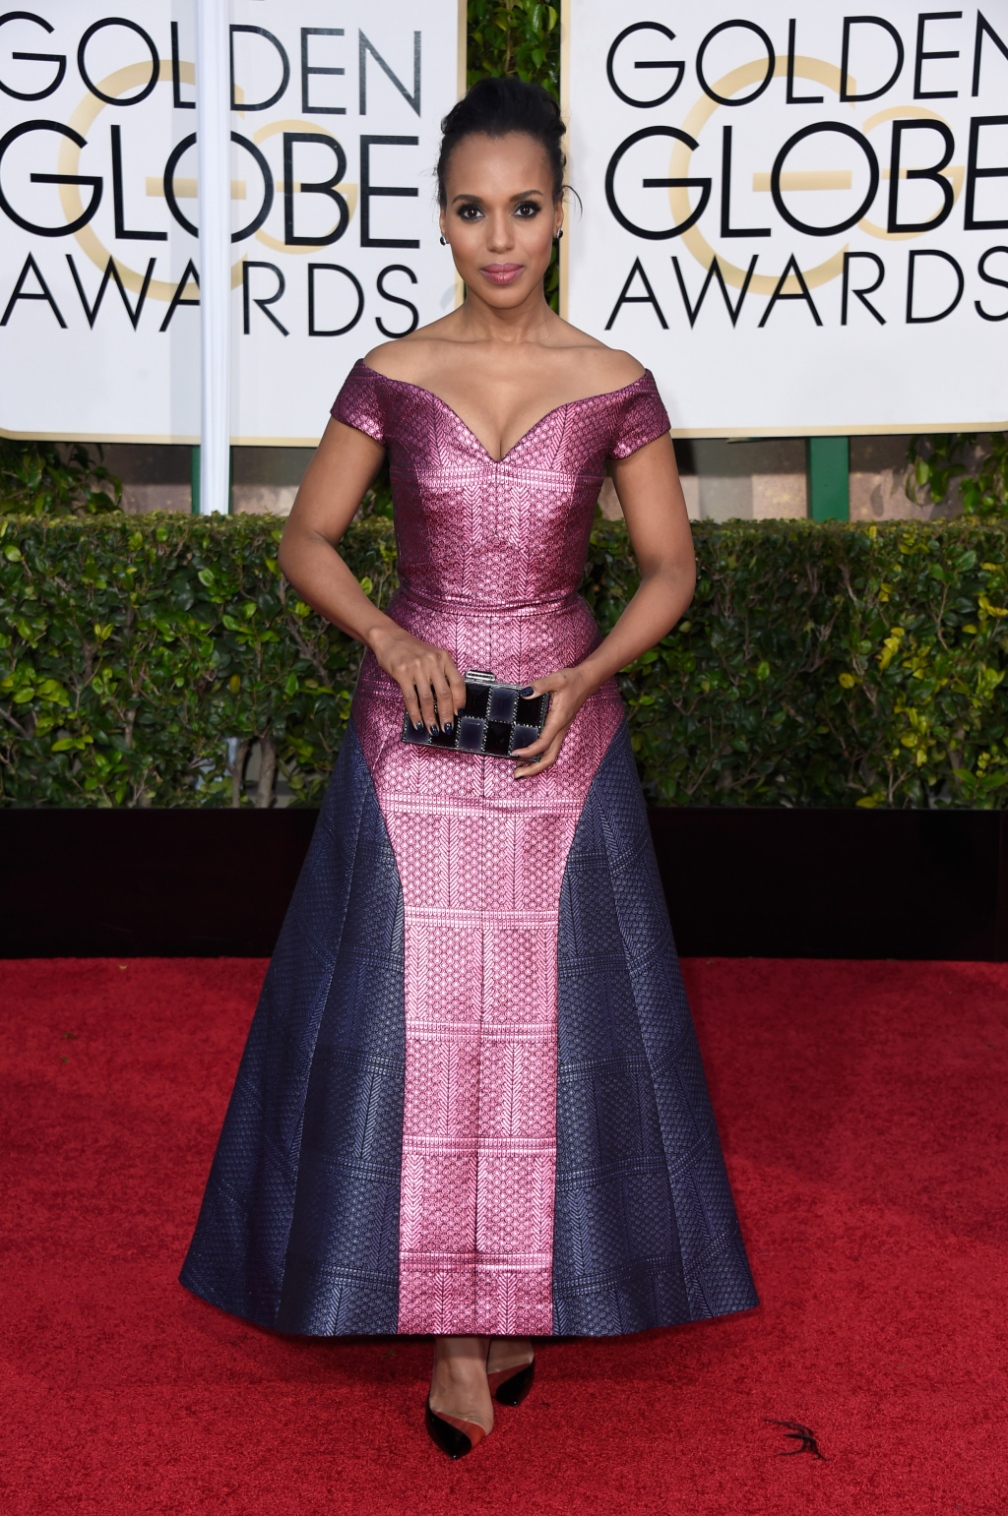 Kerry Washington - Showed up last night to honor & represent the Amish community